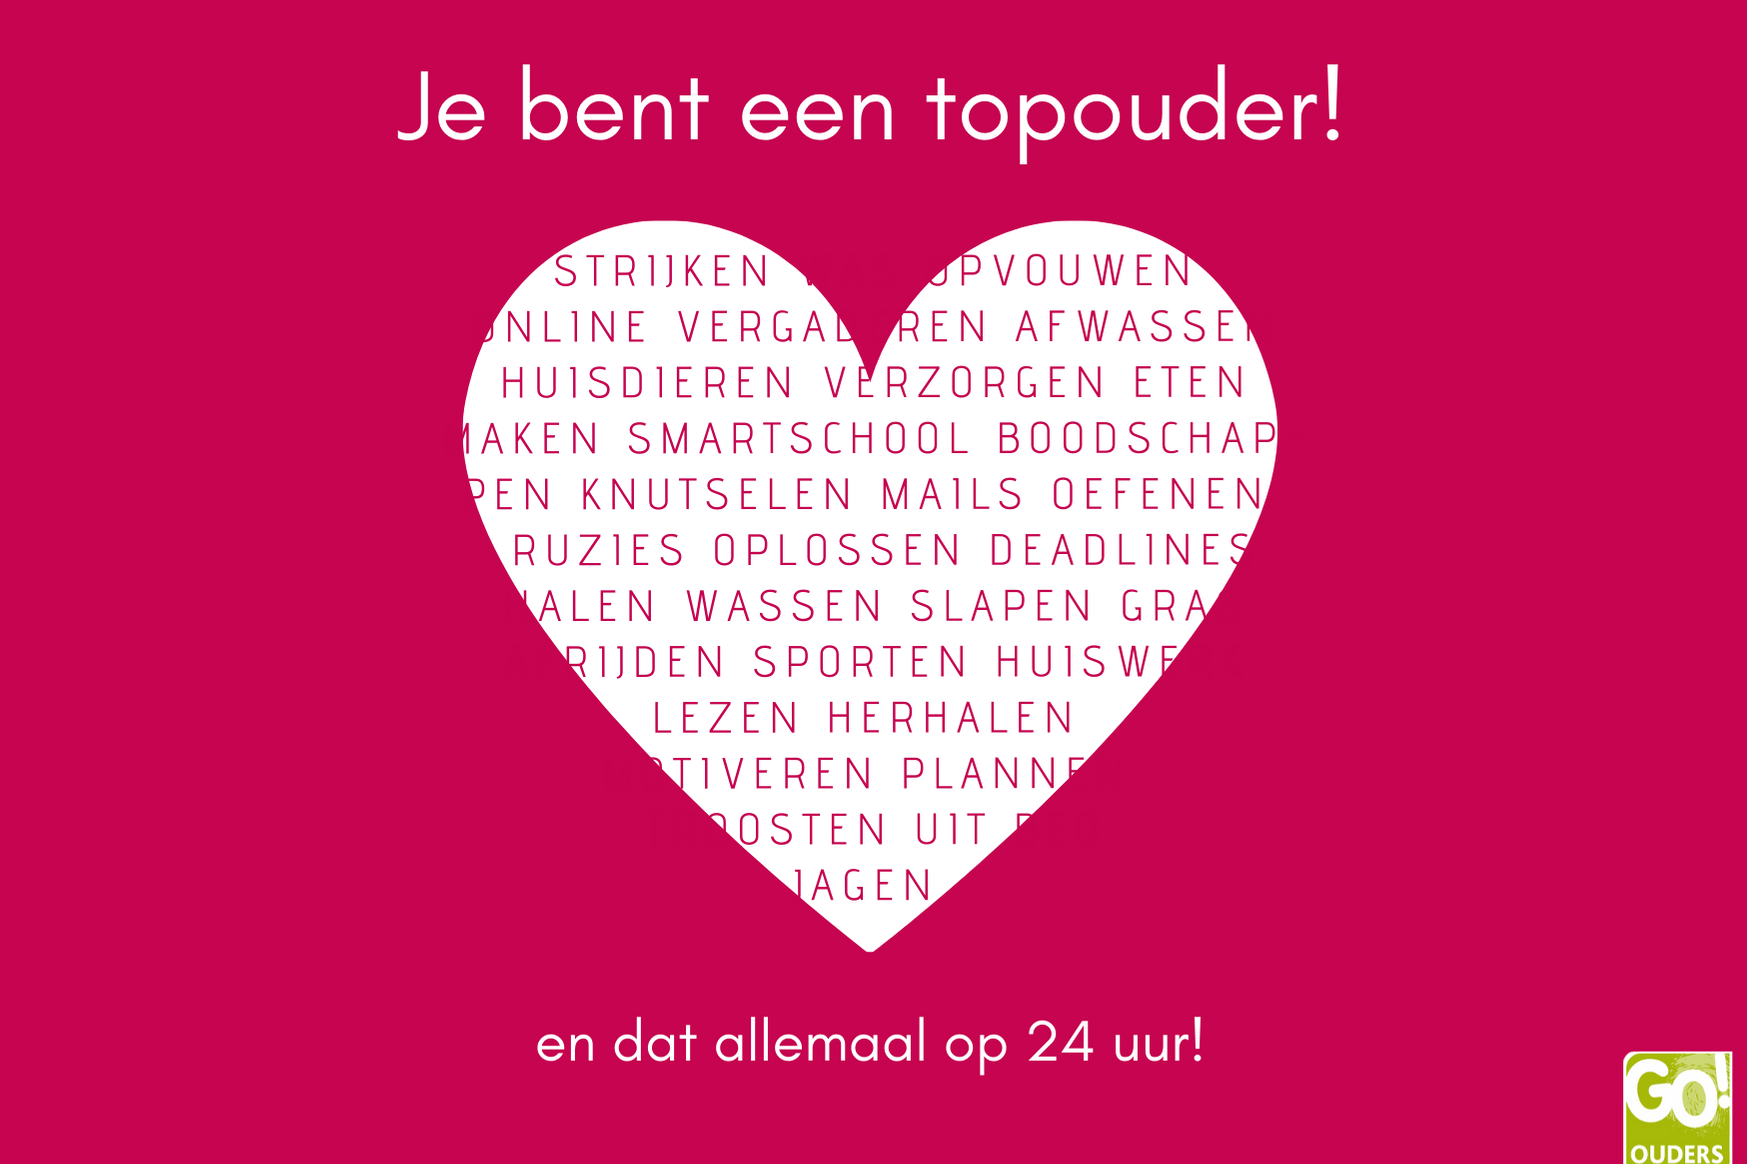 topouder